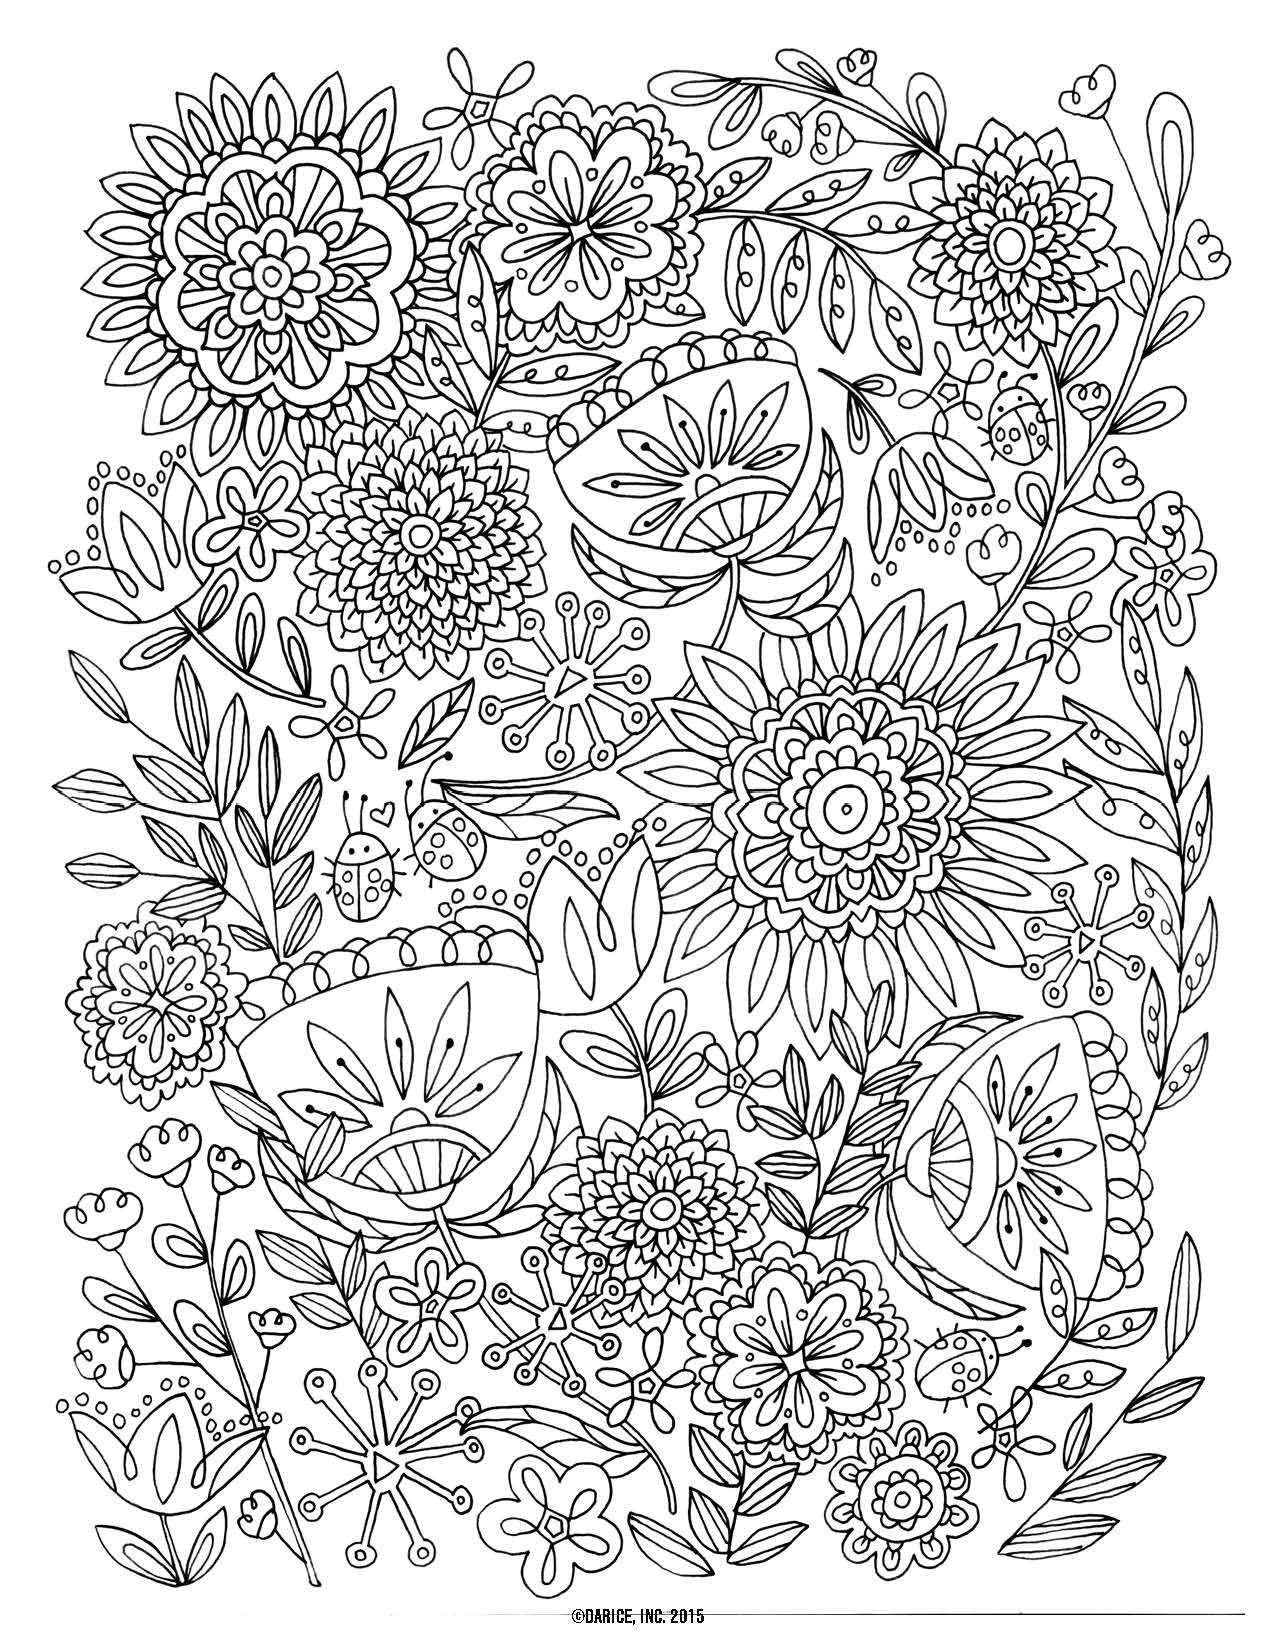 printable lighthouse coloring pages Collection-Free Printable Lighthouse Coloring Pages Printable Lighthouse Coloring Pages Lovely Lighthouse Coloring Pages 6-r